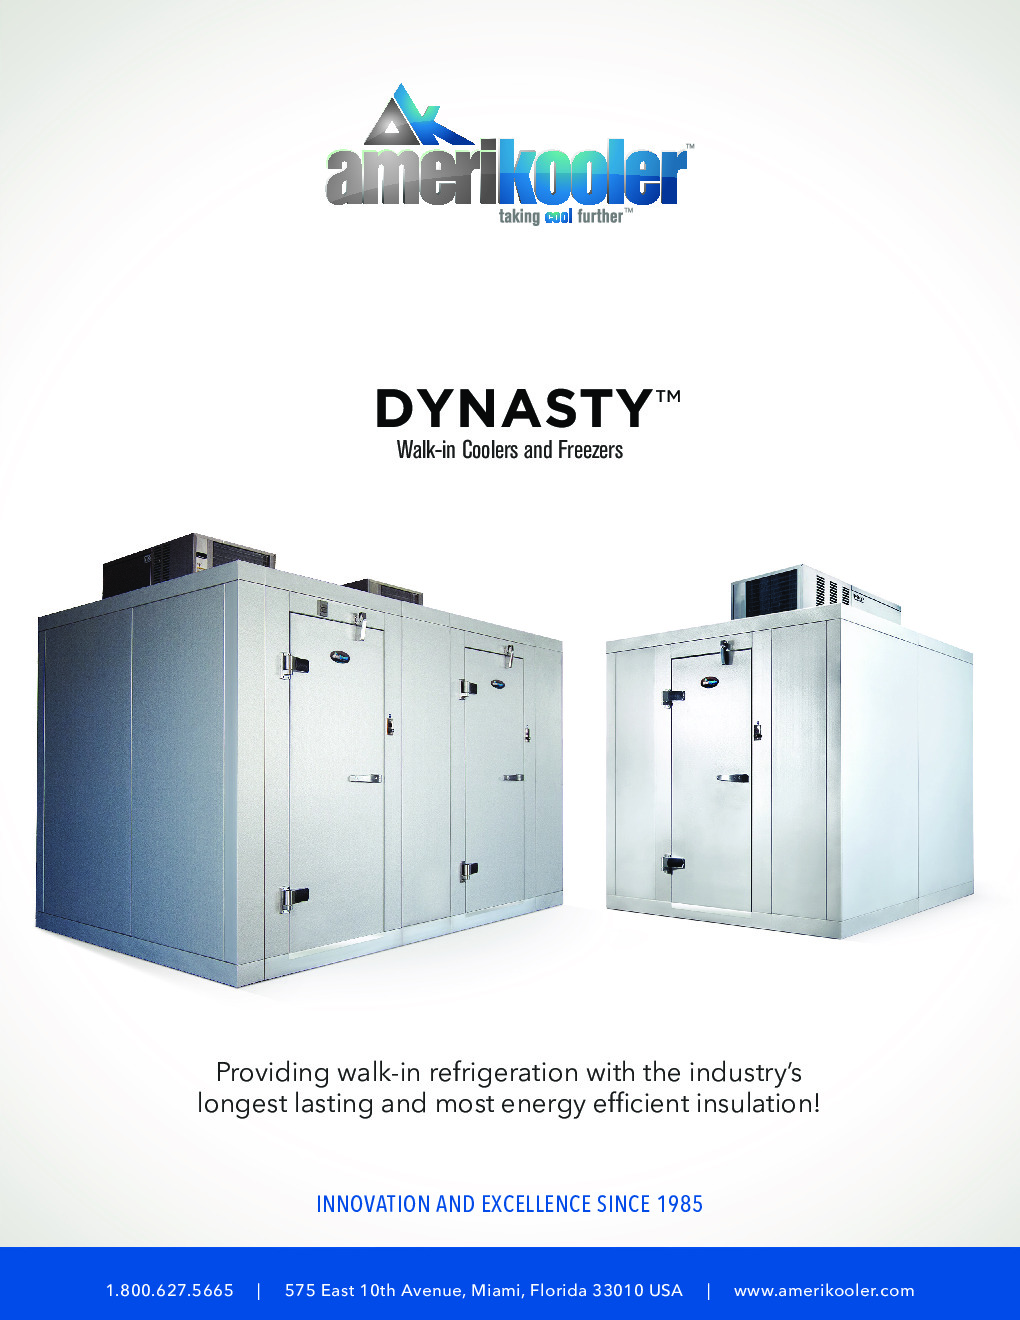 AmeriKooler DW091677F-5/11-SC 9' X 16' Walk-In Cooler, 11' L Cooler with Floor and 5' L Freezer, Self Contained